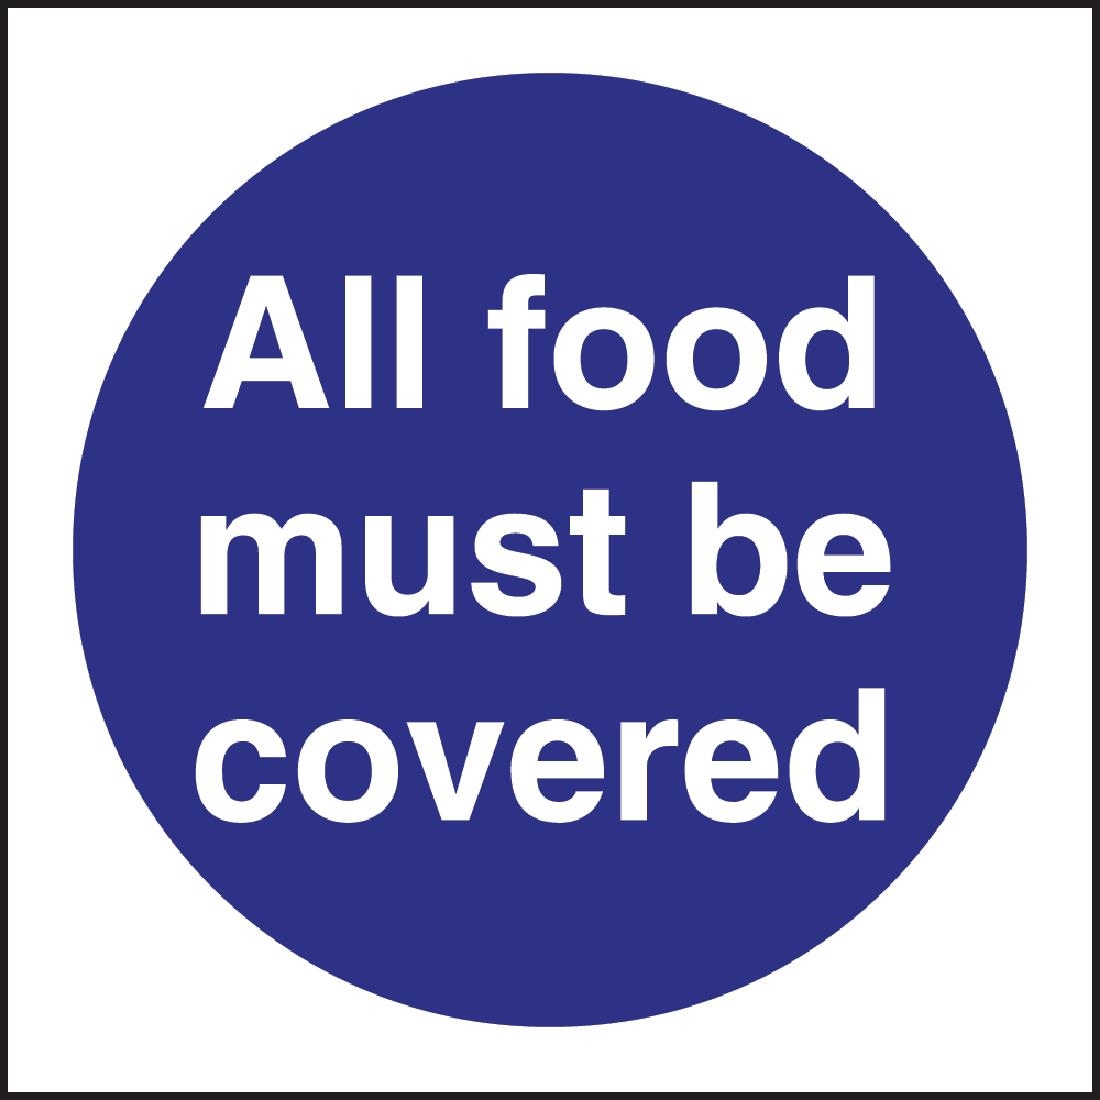 Kitchen signs buy food hygiene hse signs online uk nisbets all food must be covered sign buycottarizona Choice Image